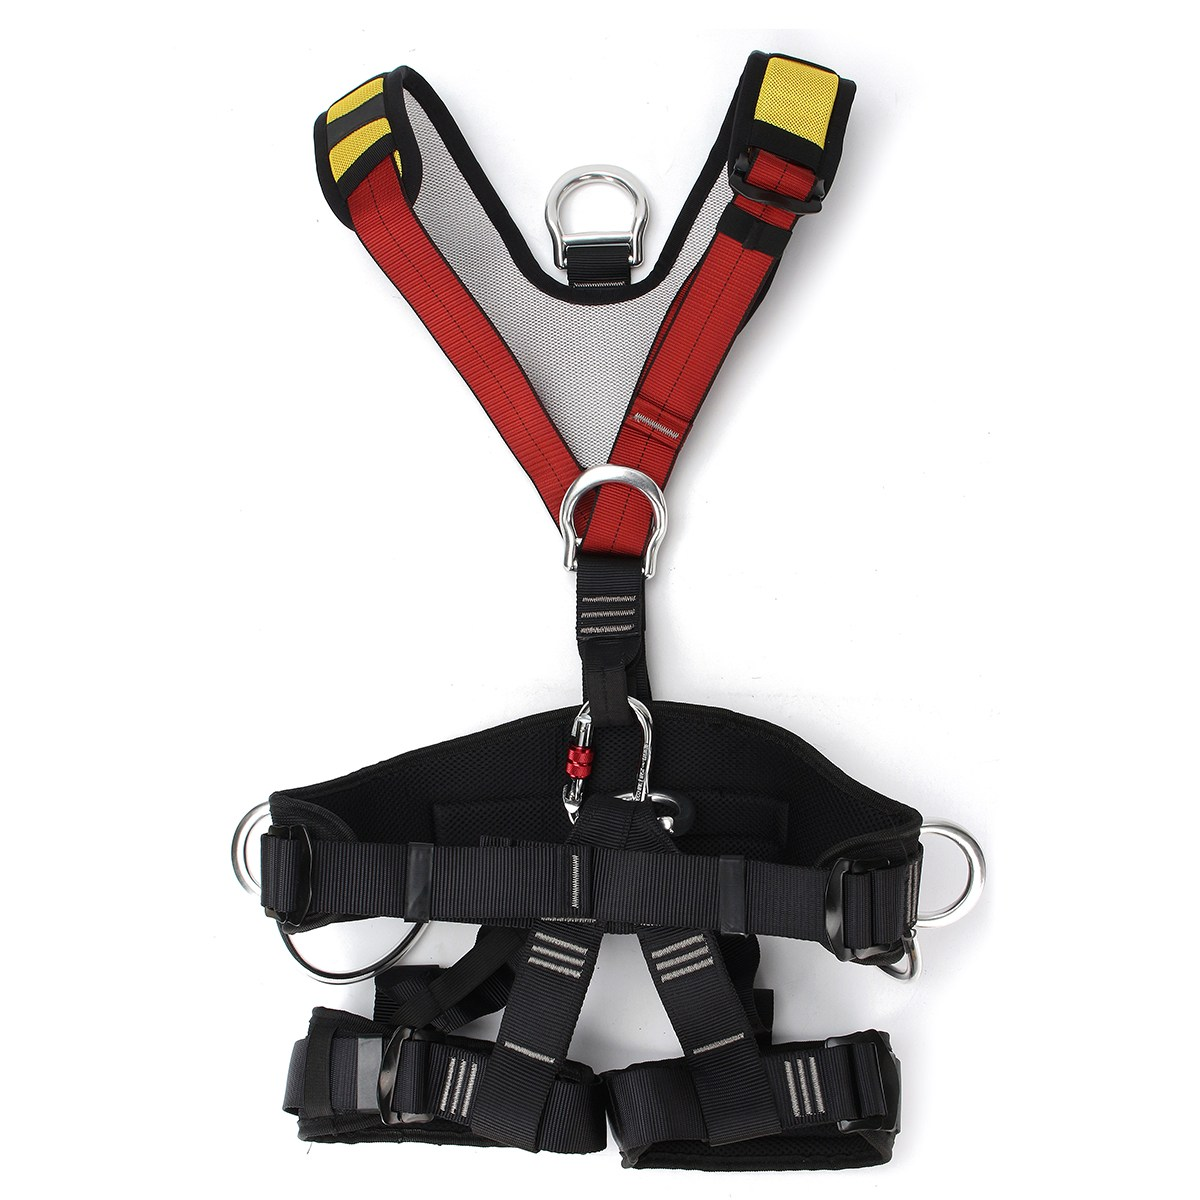 Professional Outdoor Rescue Rock Climbing Sitting Bust Belt Safety Seat Rappelling Harness Full Body Rescue Climbing Belt hot sale safety body harness outdoor mountaineering rock climbing harness protect waist seat belt outside multi tools